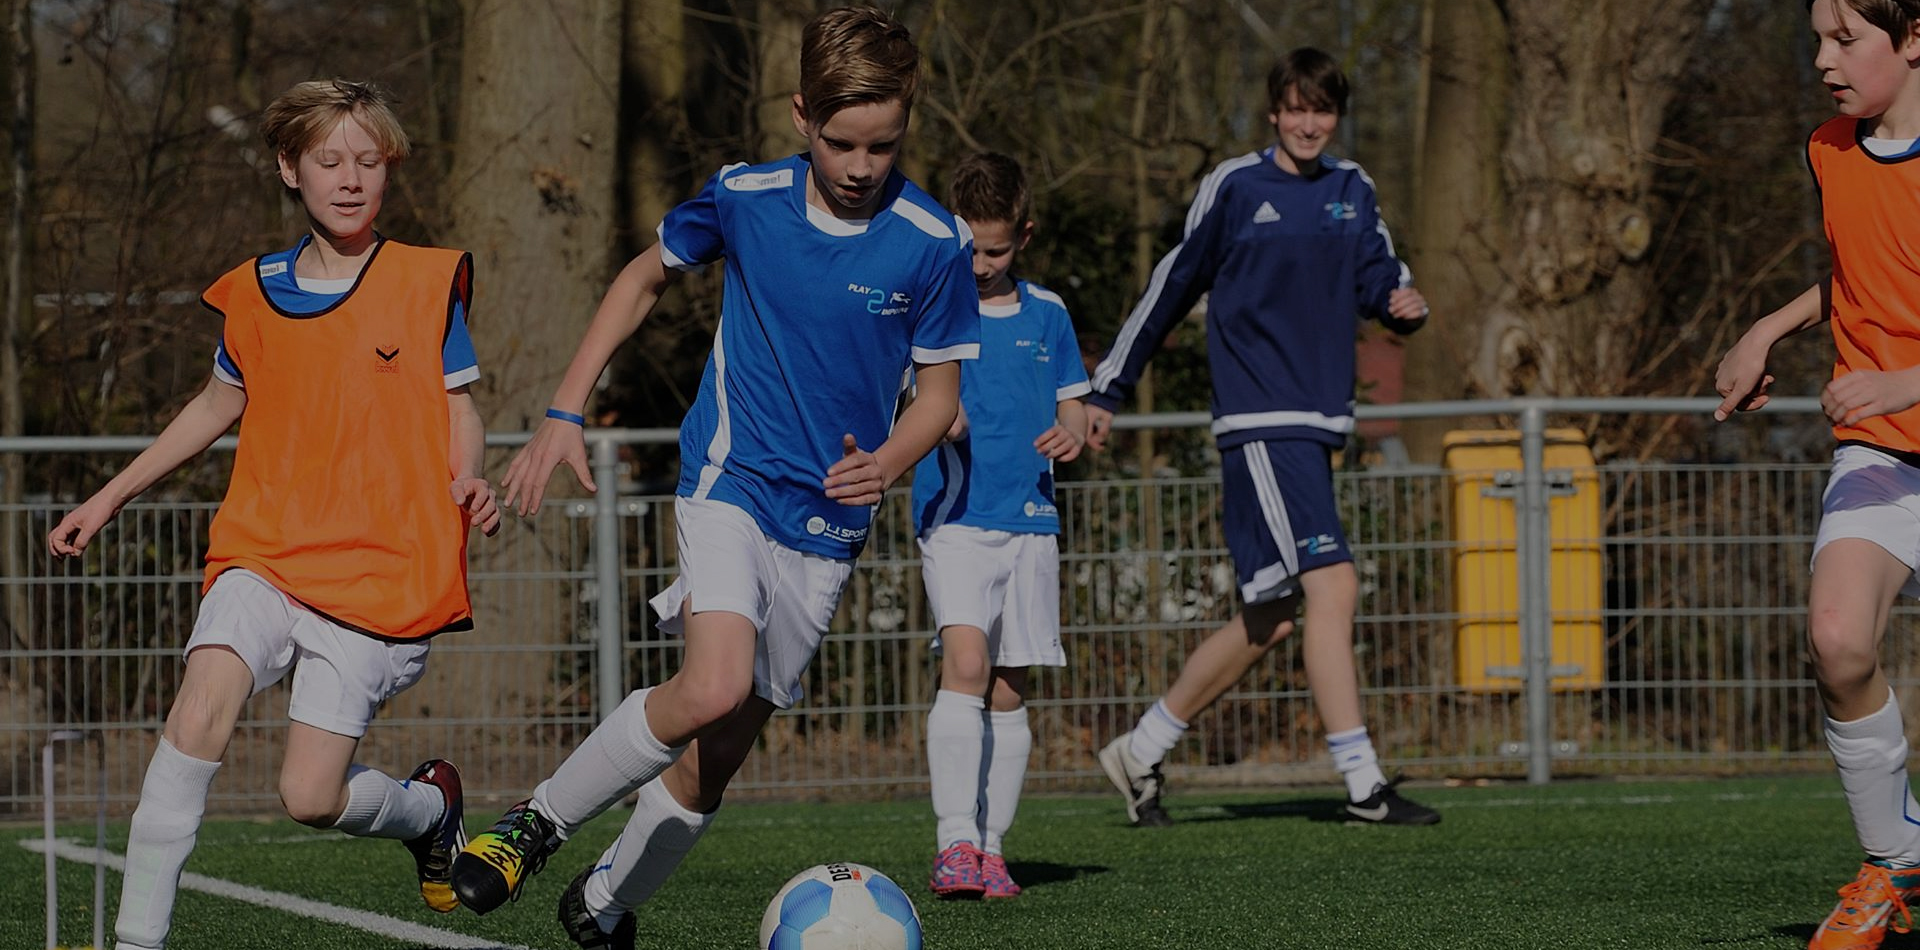 voetbalacademie-bollenstreek-play2improve